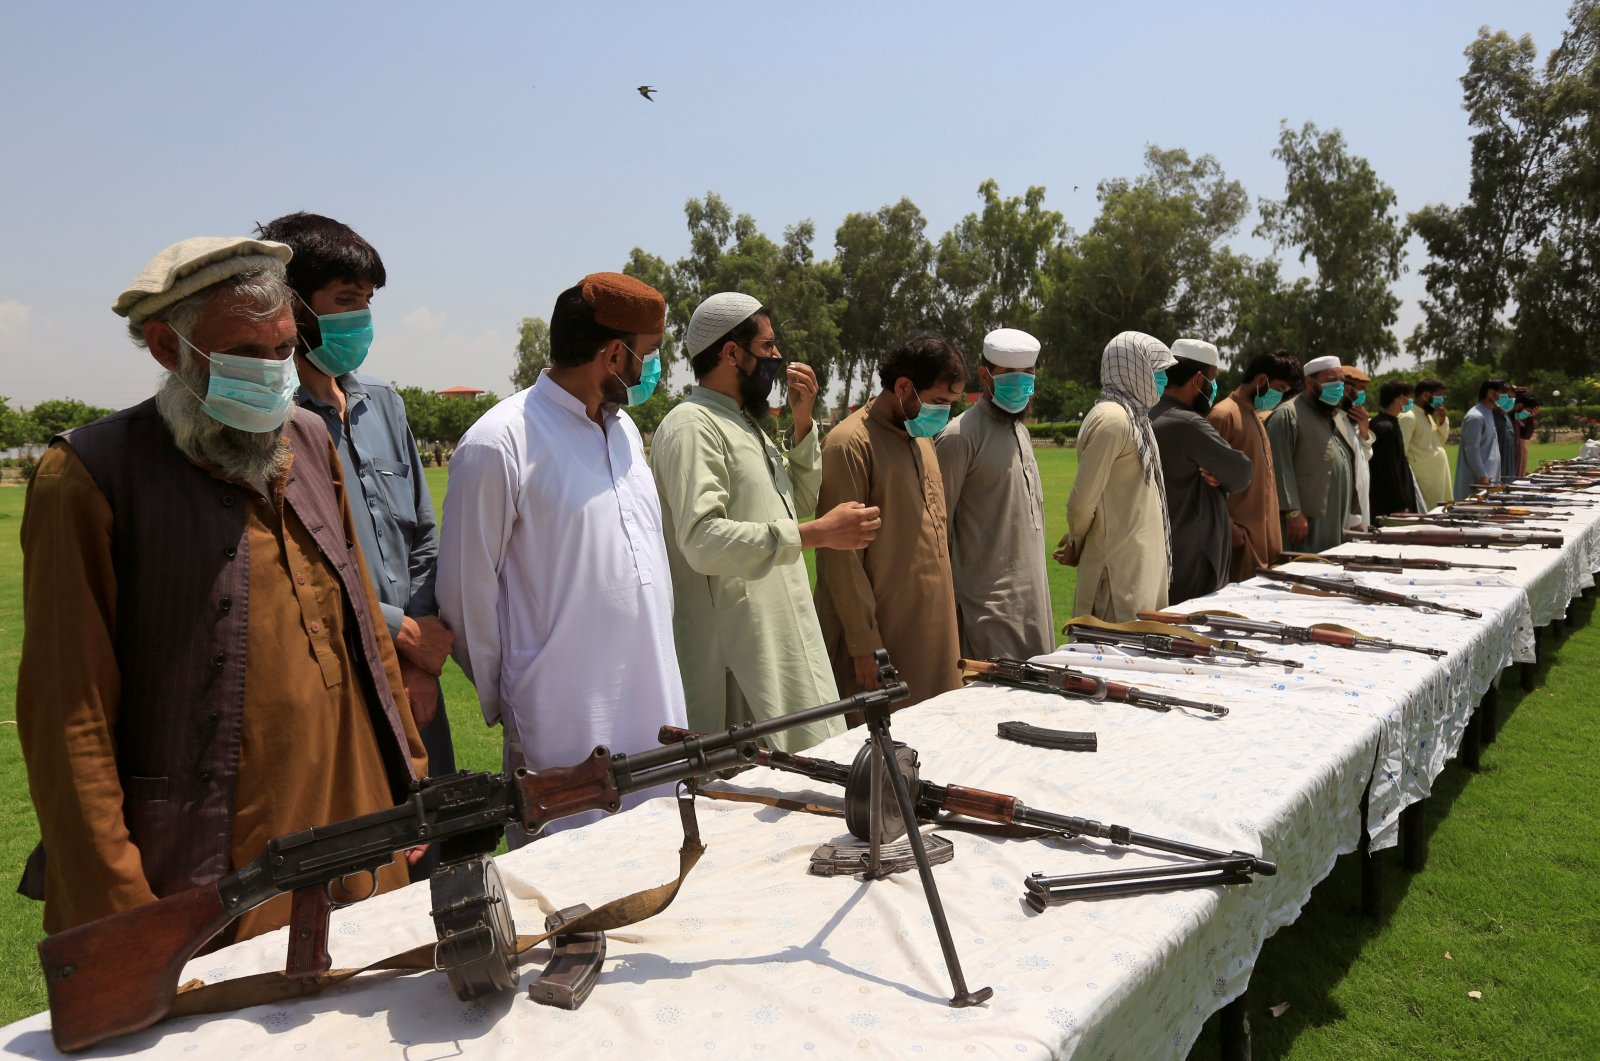 Members of the Taliban handover their weapons and join the Afghan government's reconciliation and reintegration program in Jalalabad, Afghanistan, June 25, 2020. (Reuters Photo)